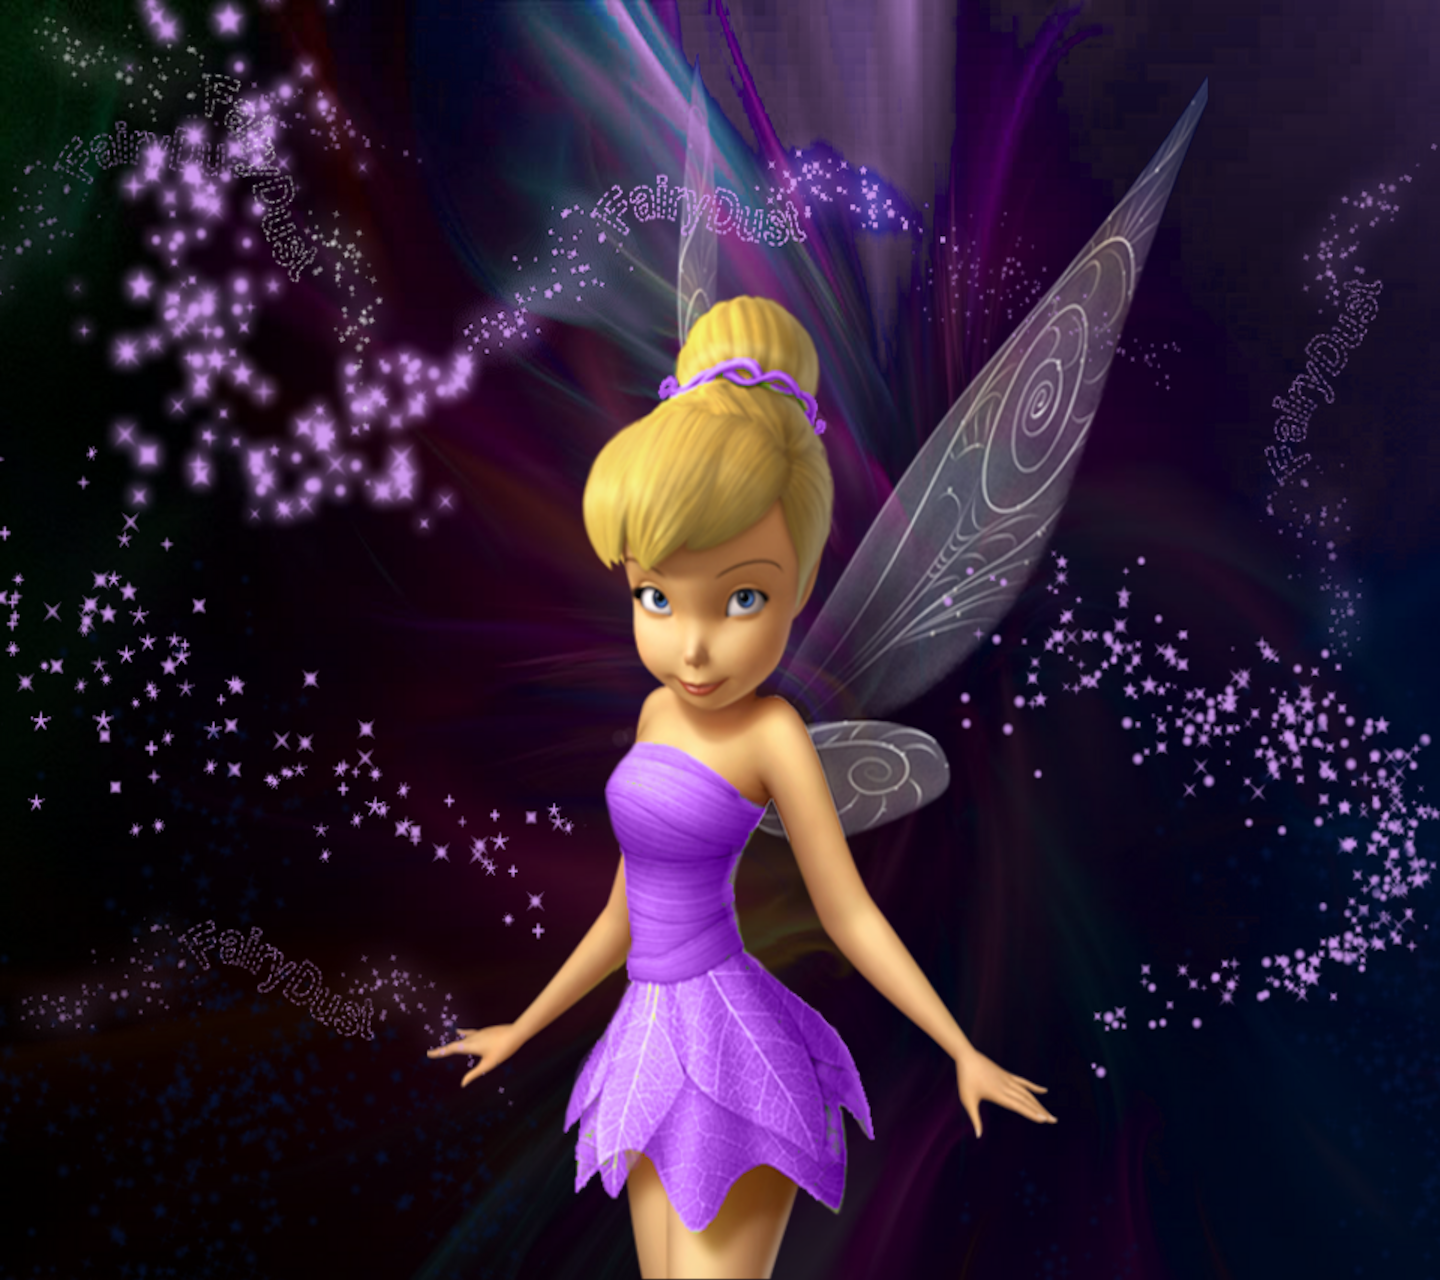 tinkerbell wallpaper hd wallpapersafari